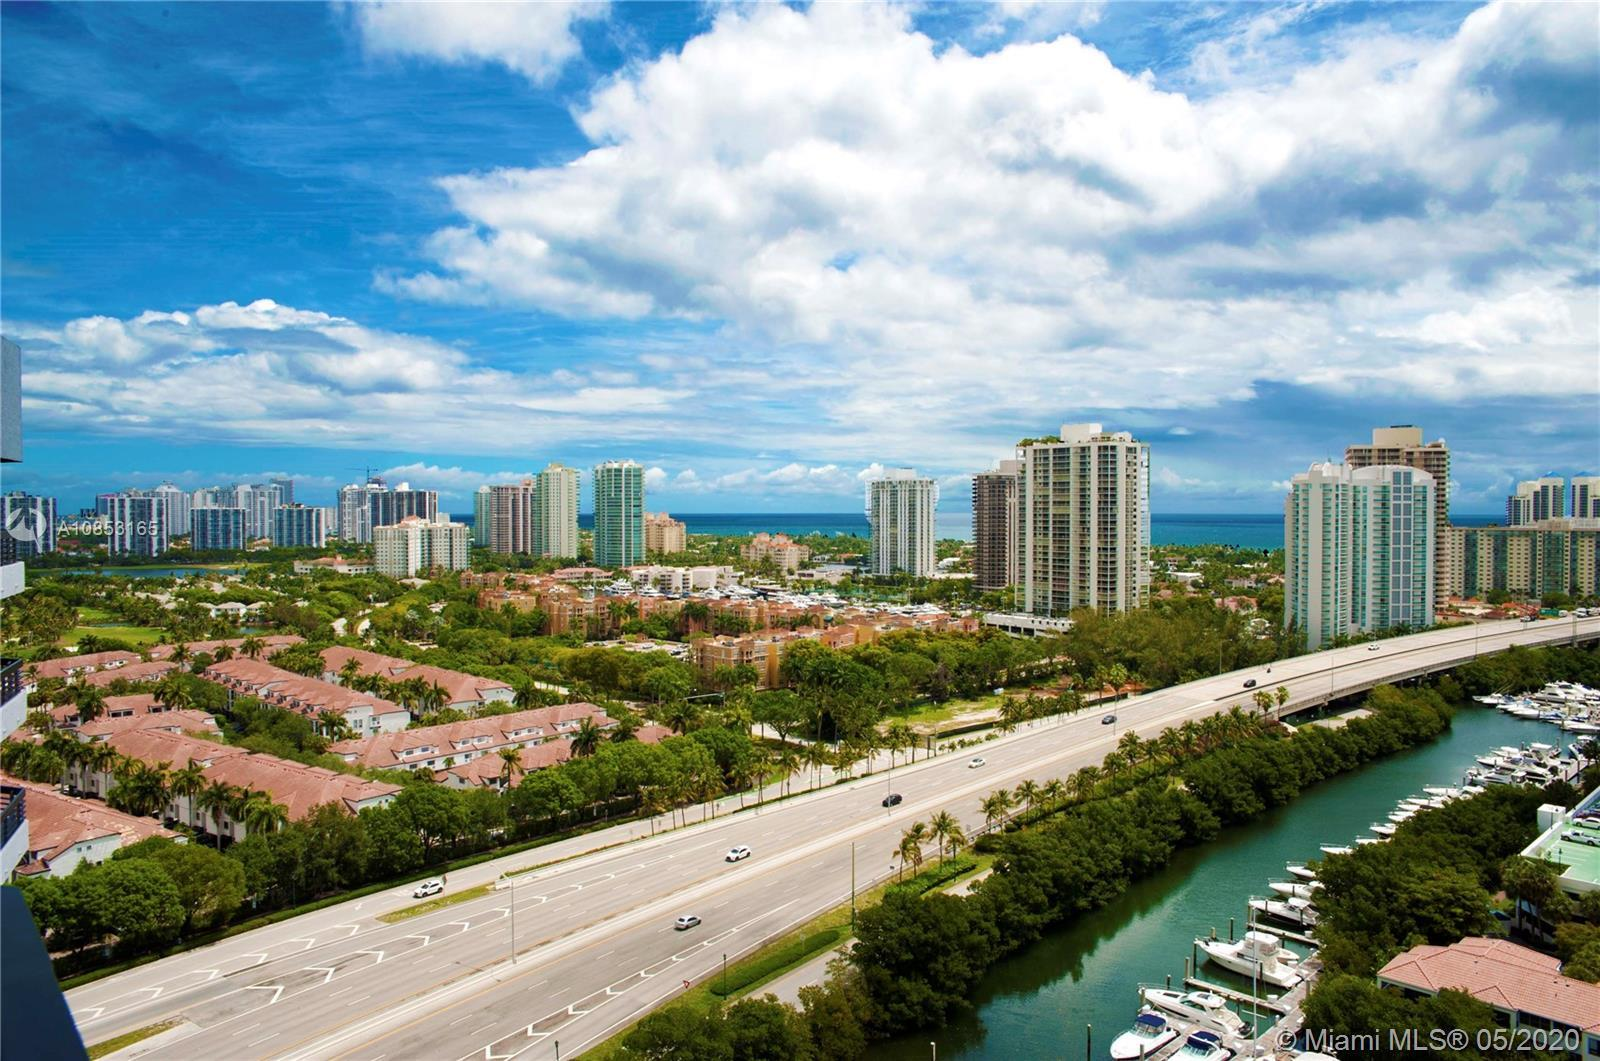 Penthouse living at its best at the heart of Aventura. Fabulous Ocean and Intracoastal views on this